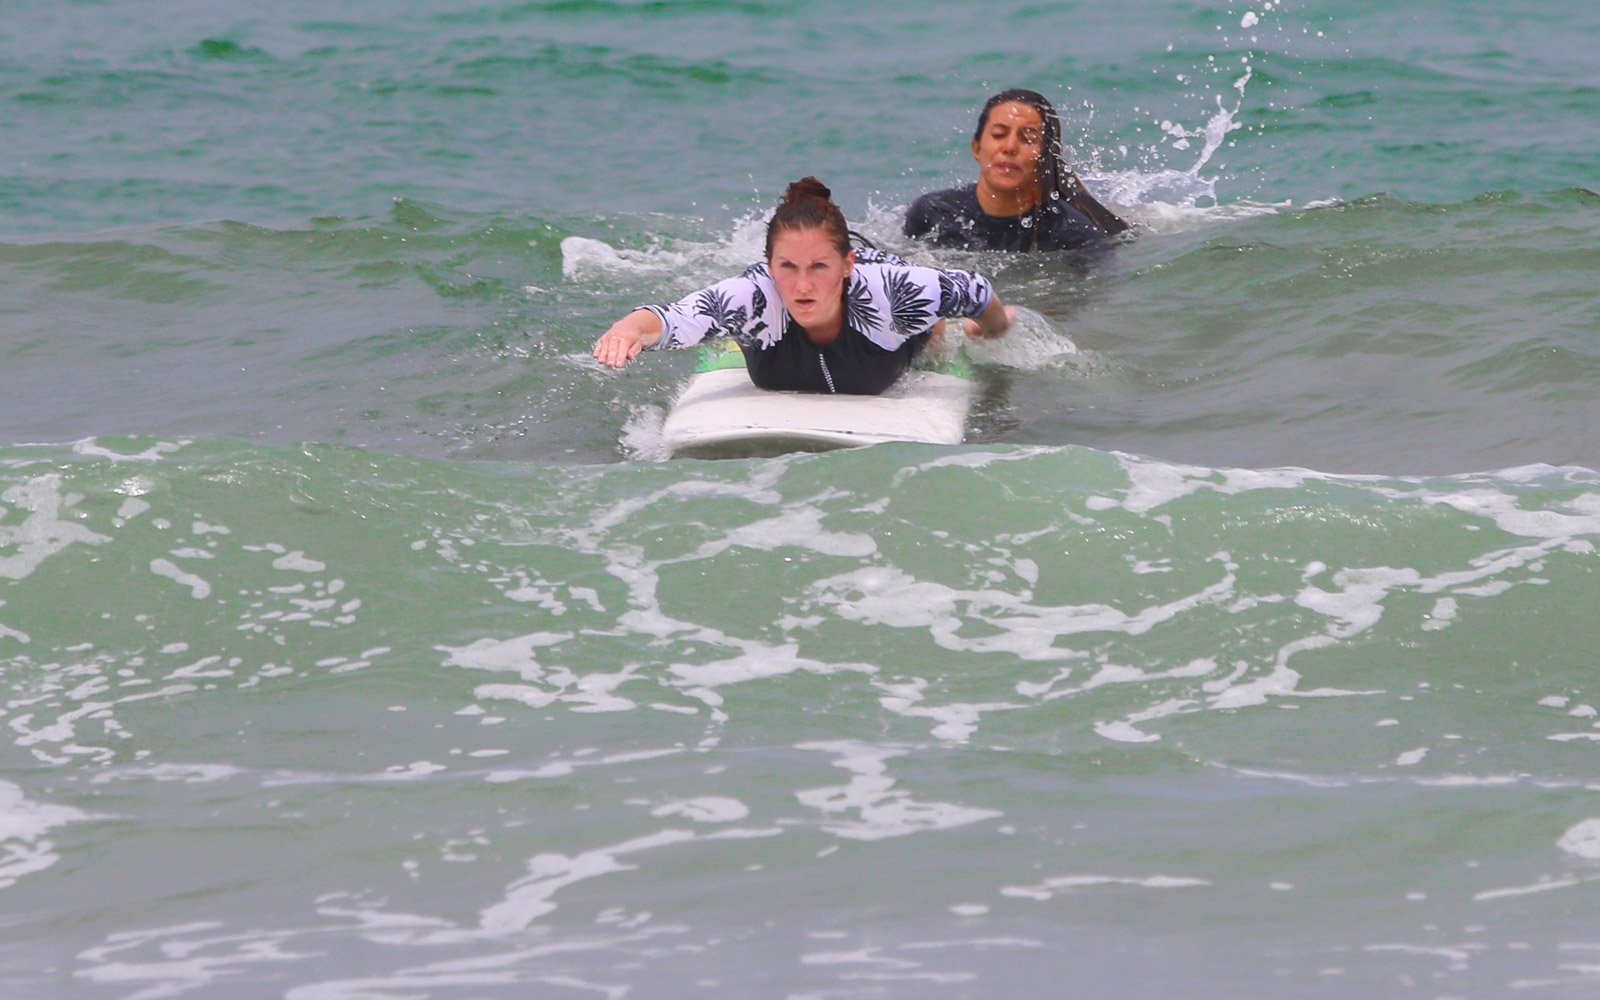 paddling into a wave